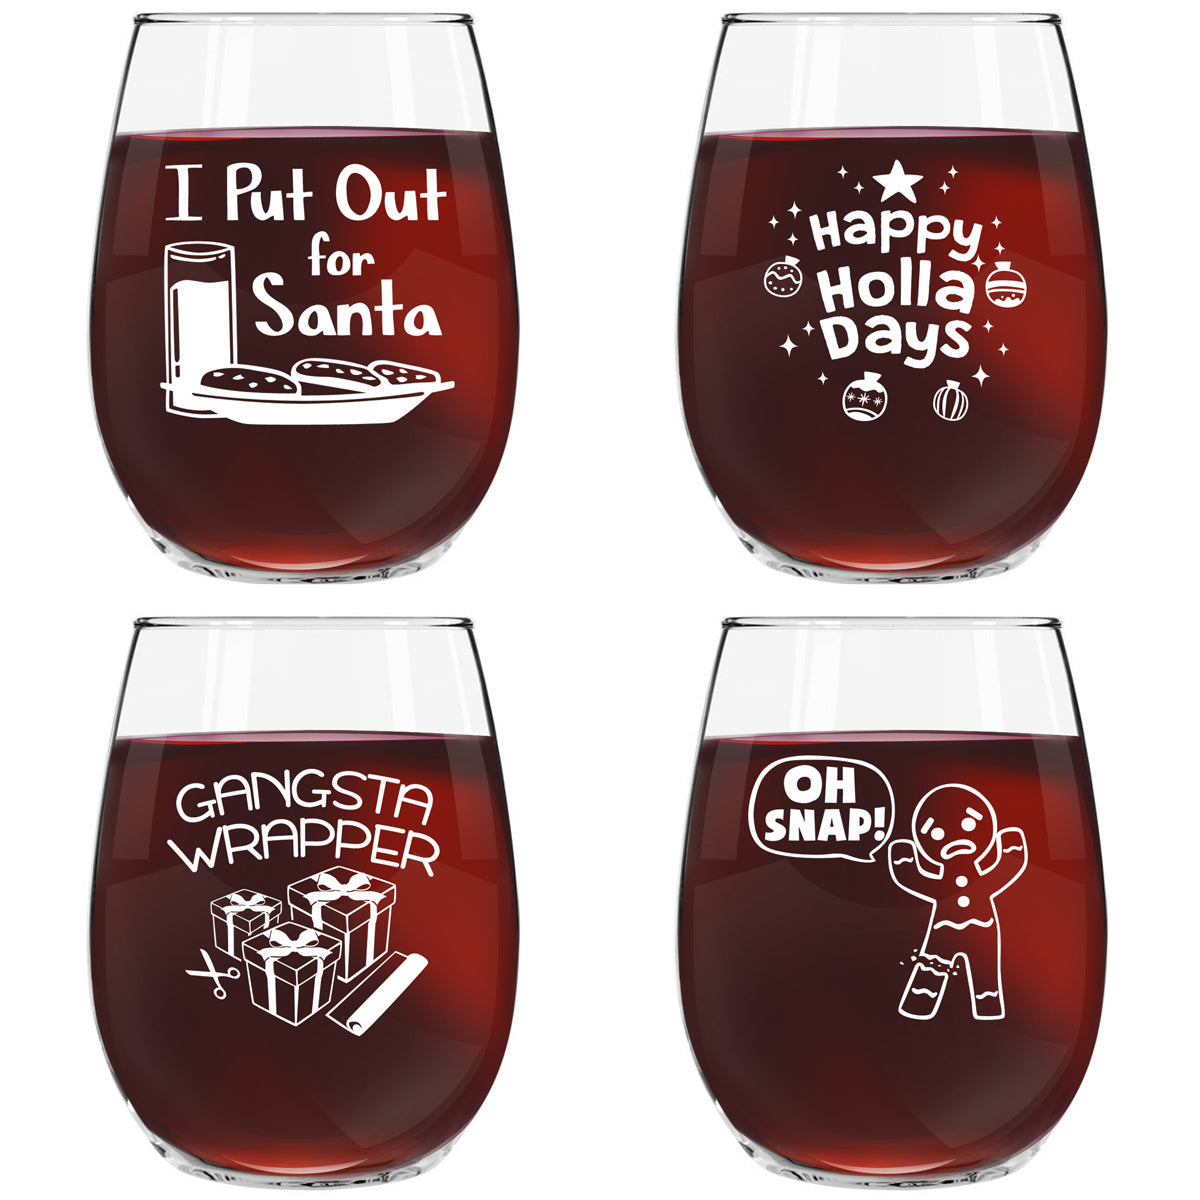 Christmas Puns Funny Stemless Wine Glasses (Set of 4) - 15 oz - Cheerful Holiday Party Cups-Hilarious Gift Exchange Idea for the Christmas Holiday Season